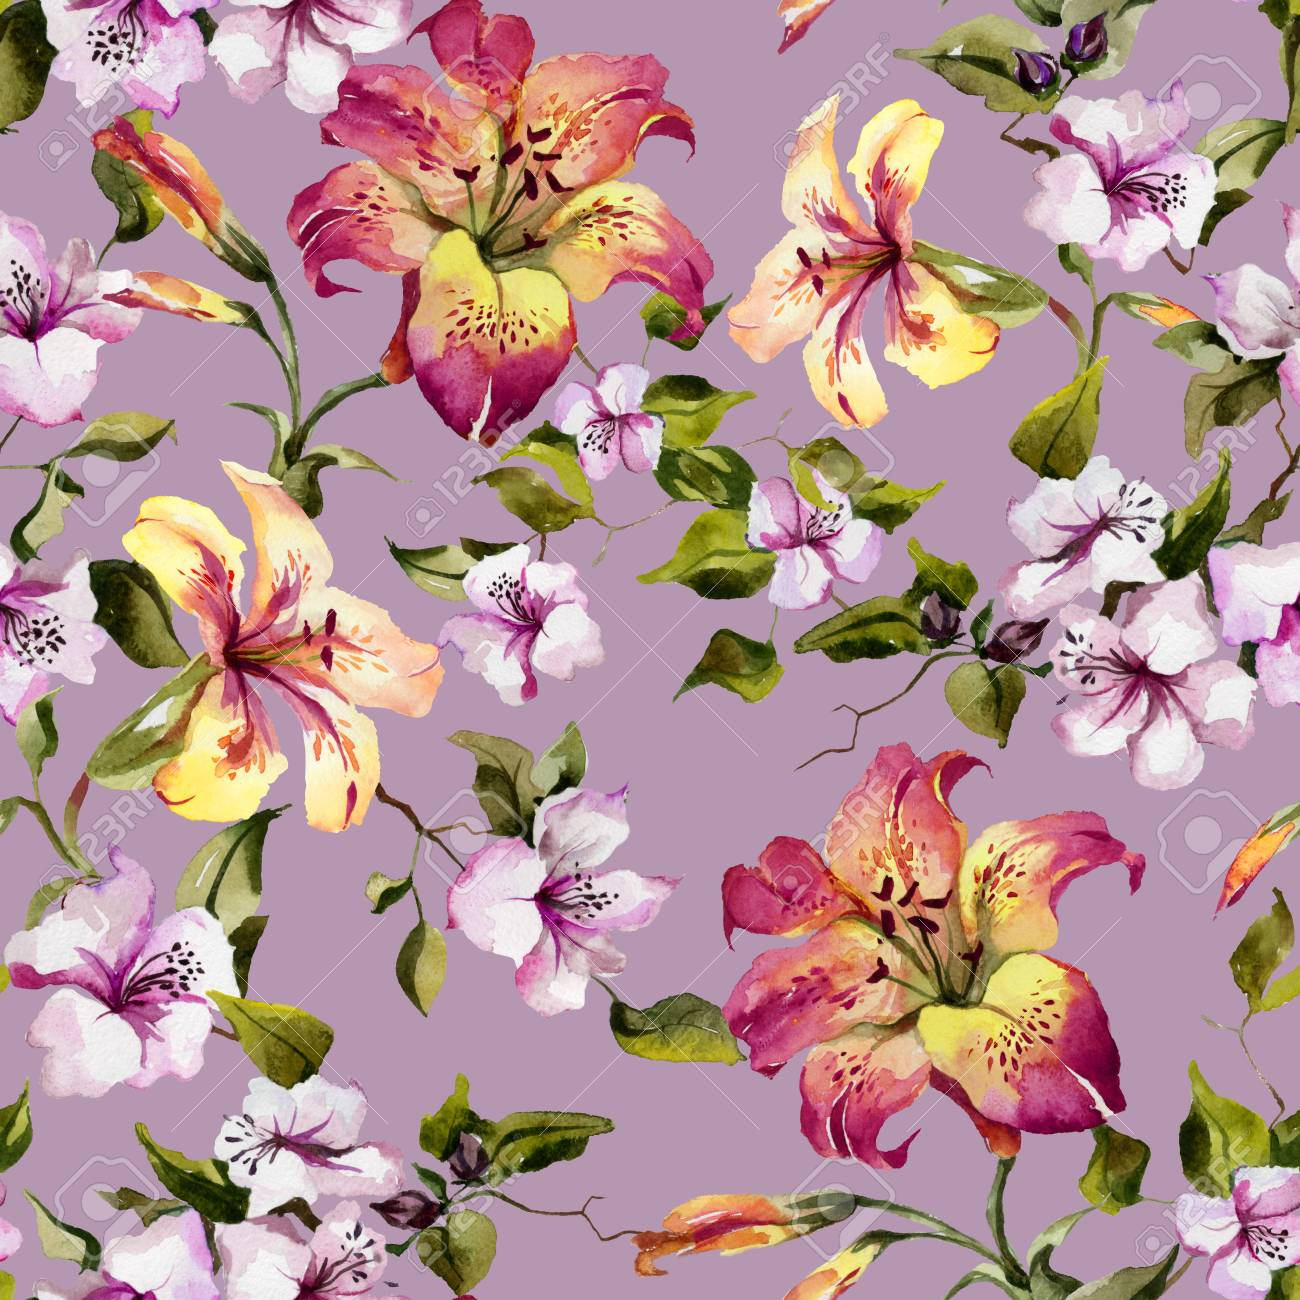 735e39accb1e Beautiful tiger lilies and small purple flowers on twigs against lilac  background. Seamless floral pattern